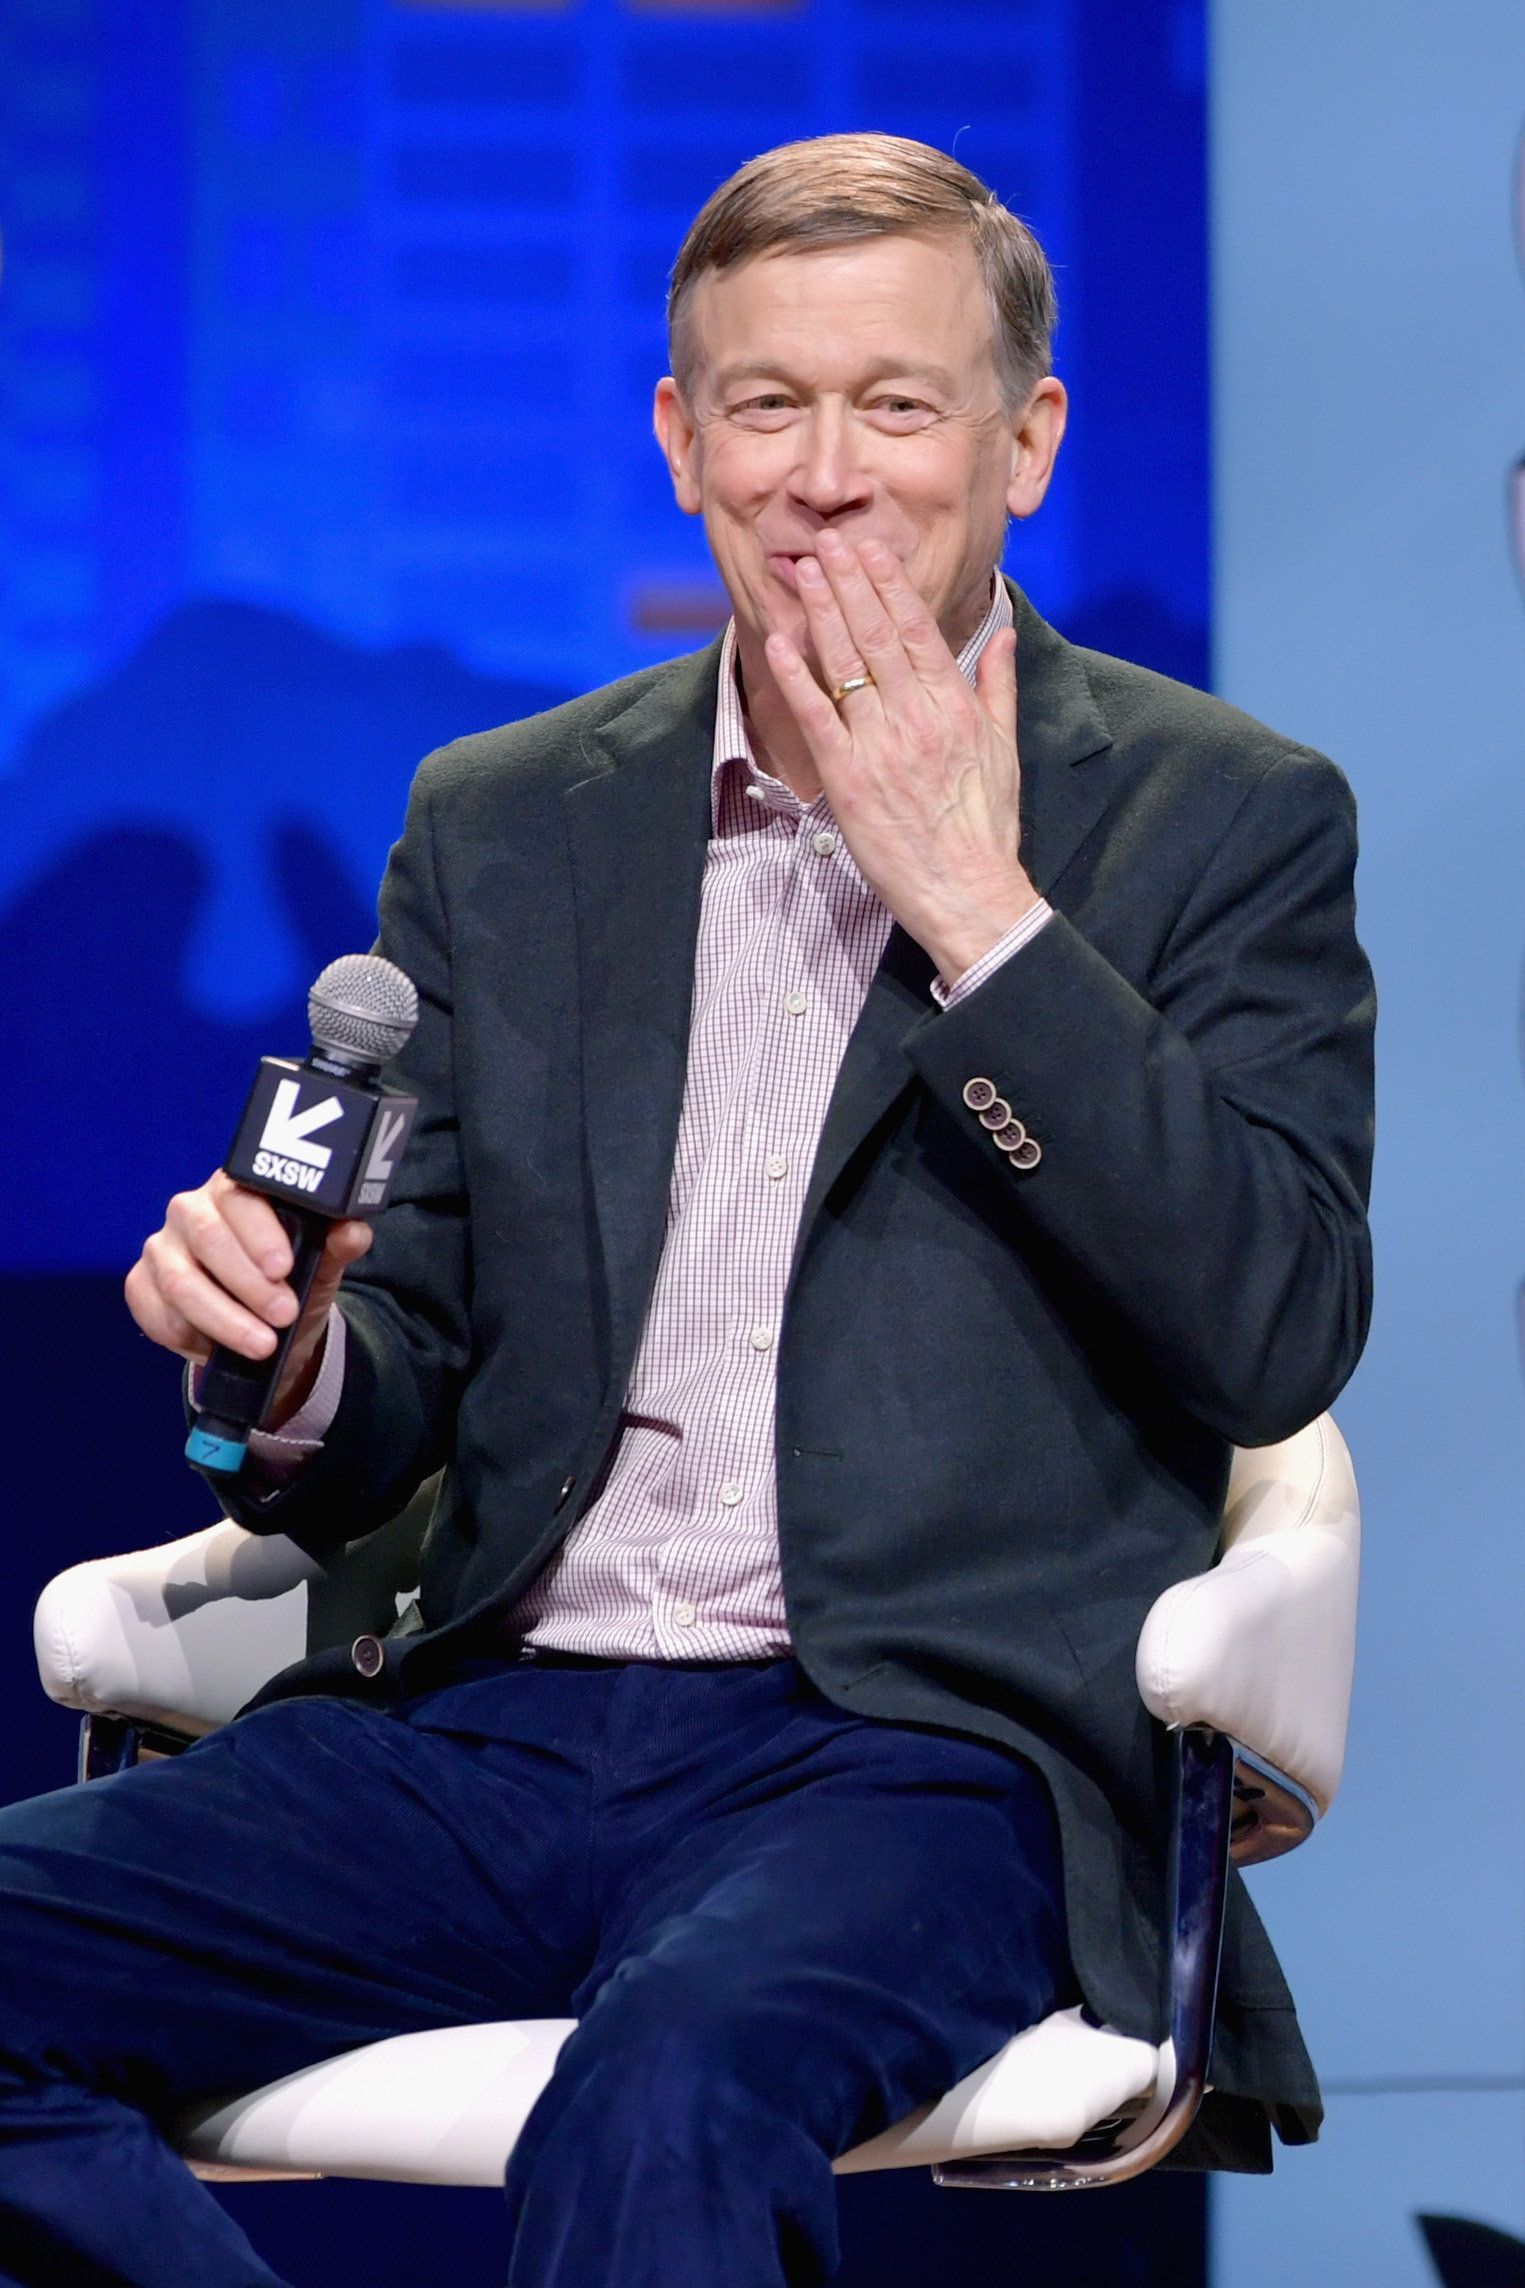 AUSTIN, TX - MARCH 10:  John Hickenlooper speaks onstage at Conversations About America's Future: Former Governor John Hickenlooper during the 2019 SXSW Conference and Festivals at Austin City Limits Live at the Moody Theater on March 10, 2019 in Austin, Texas.  (Photo by Danny Matson/Getty Images for SXSW)